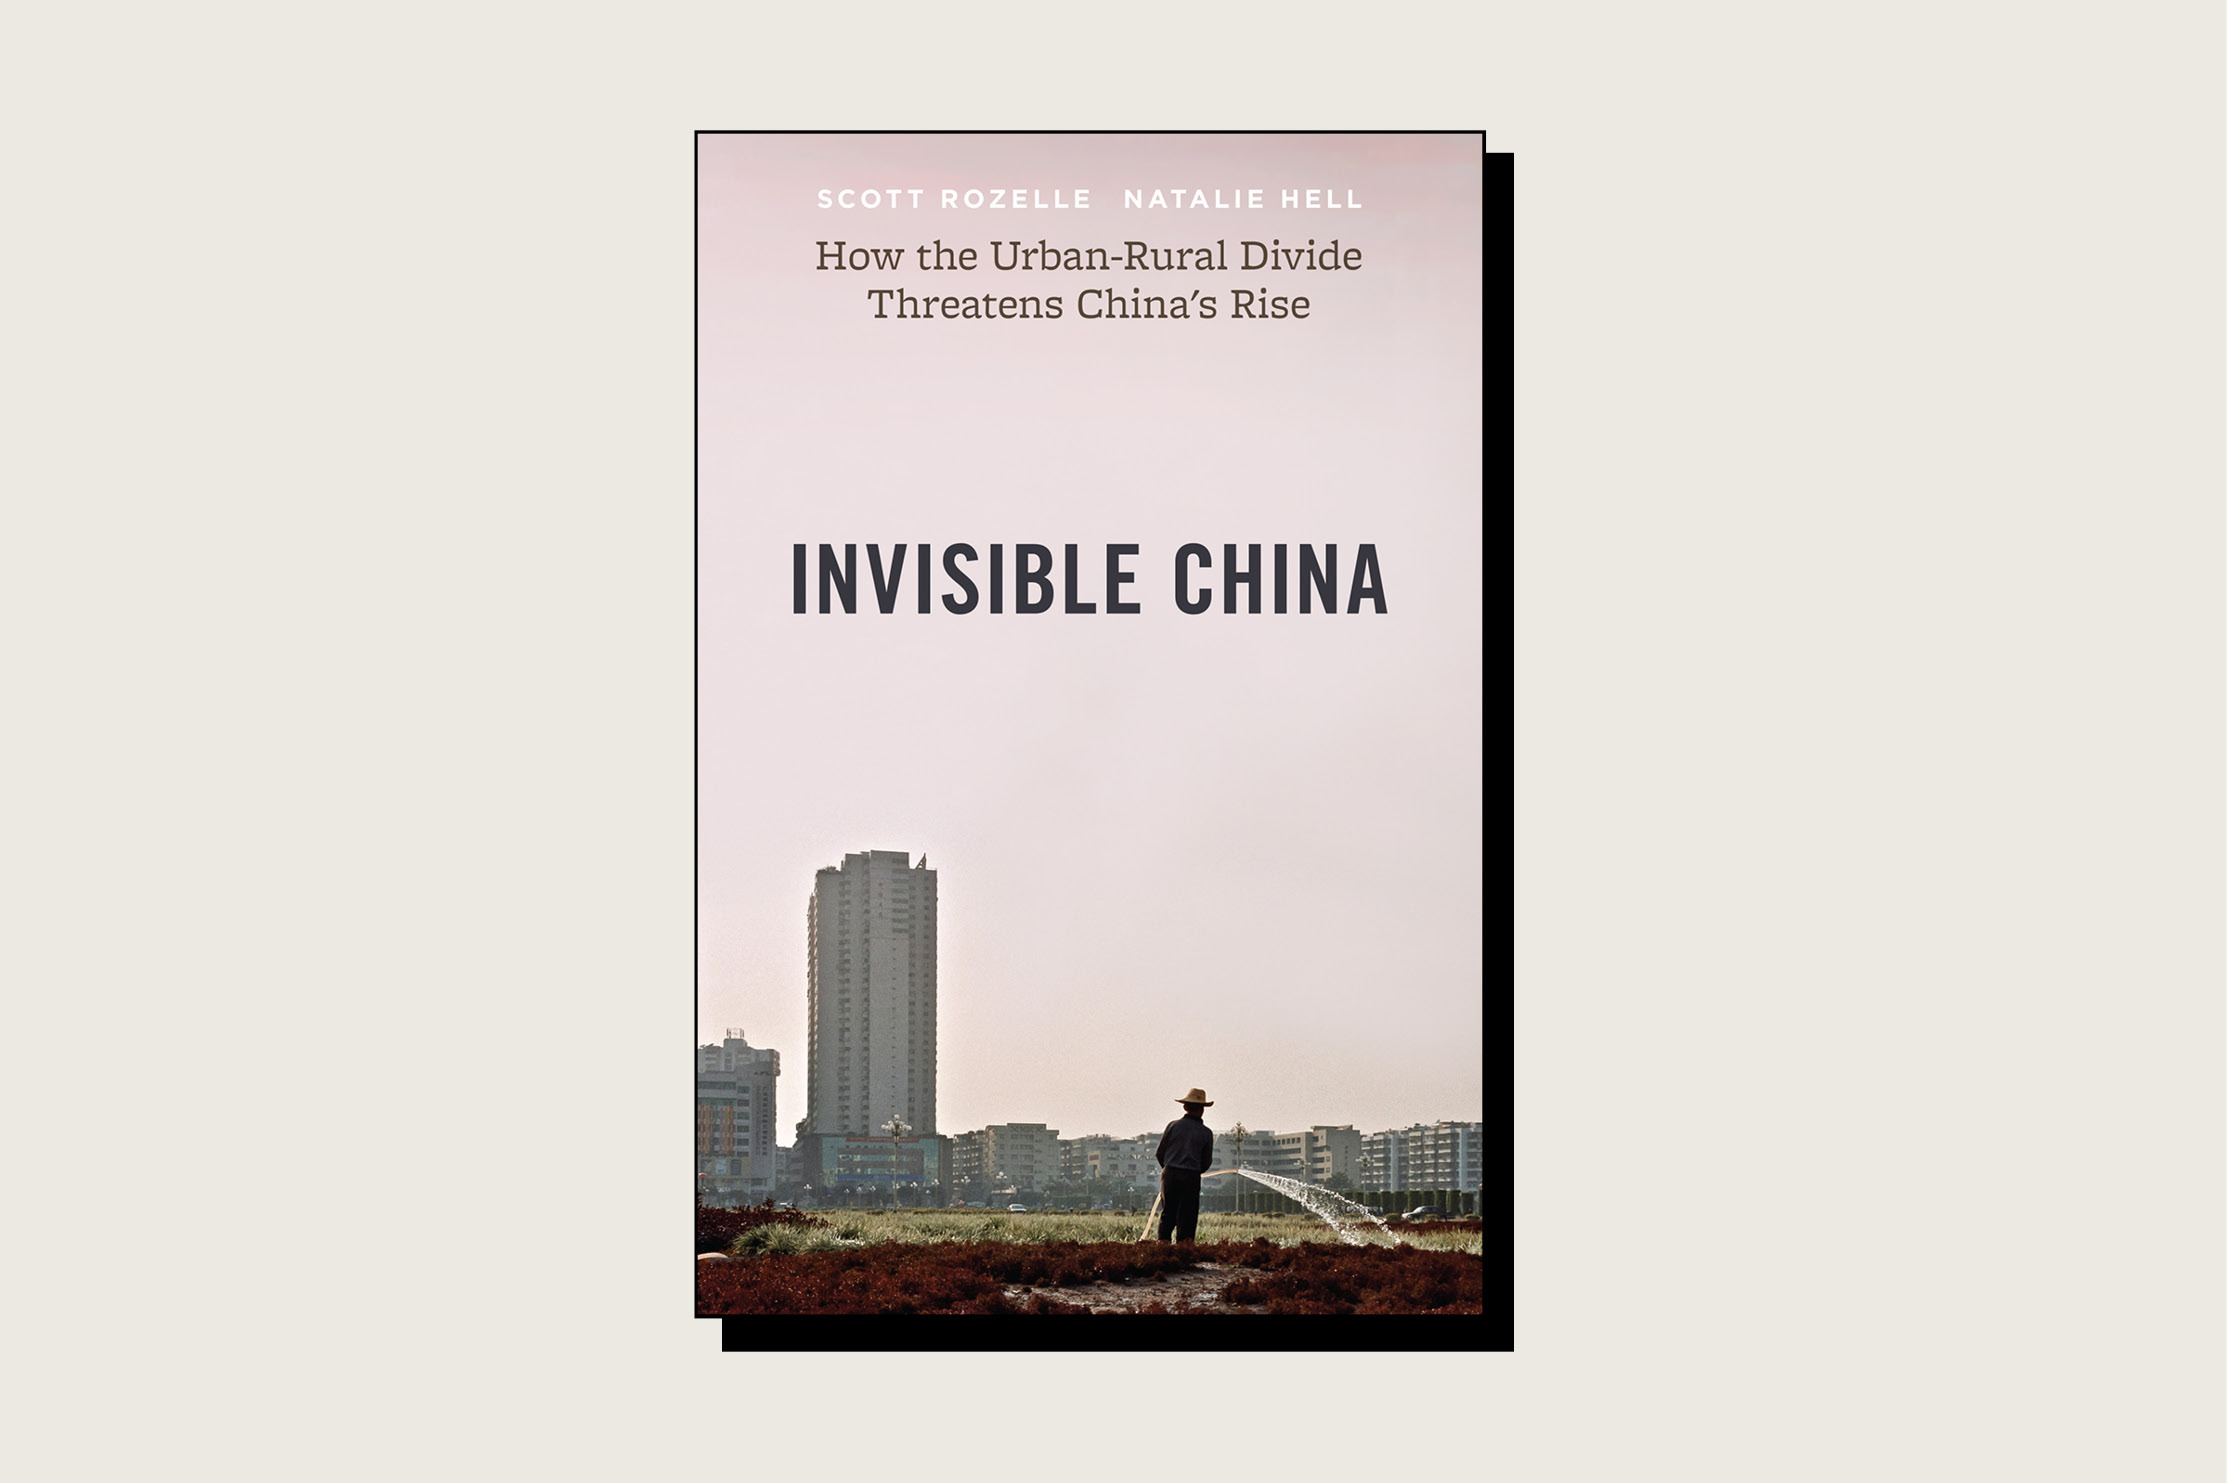 Invisible China: How the Urban-Rural Divide Threatens China's Rise, Scott Rozelle and Natalie Hell, University of Chicago Press, 248pp., 2020.